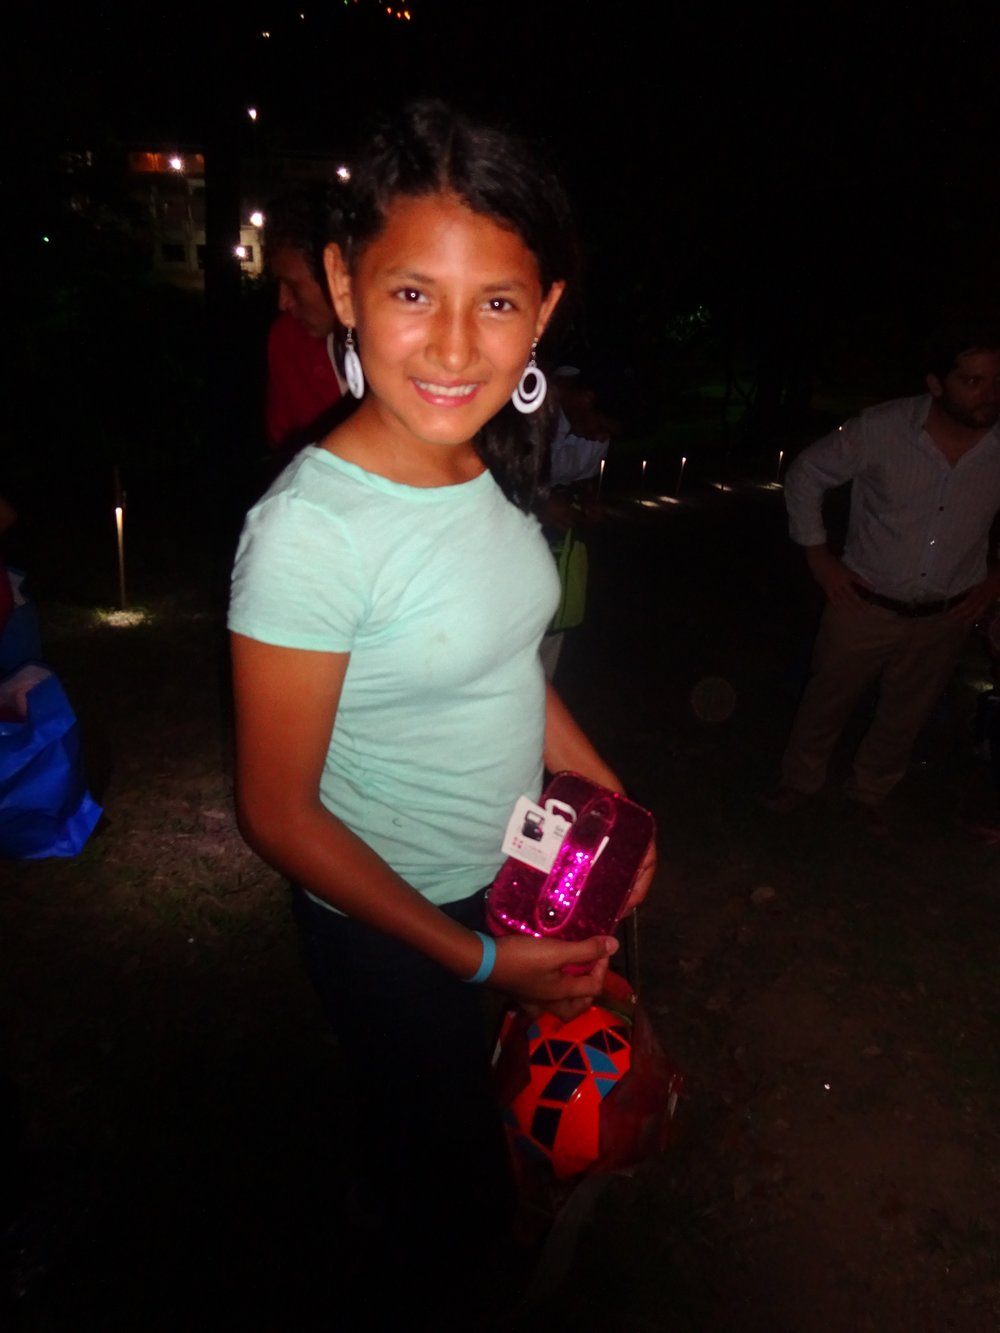 Maria receiving presents donated by her padrinos from the U.S. on Christmas last year